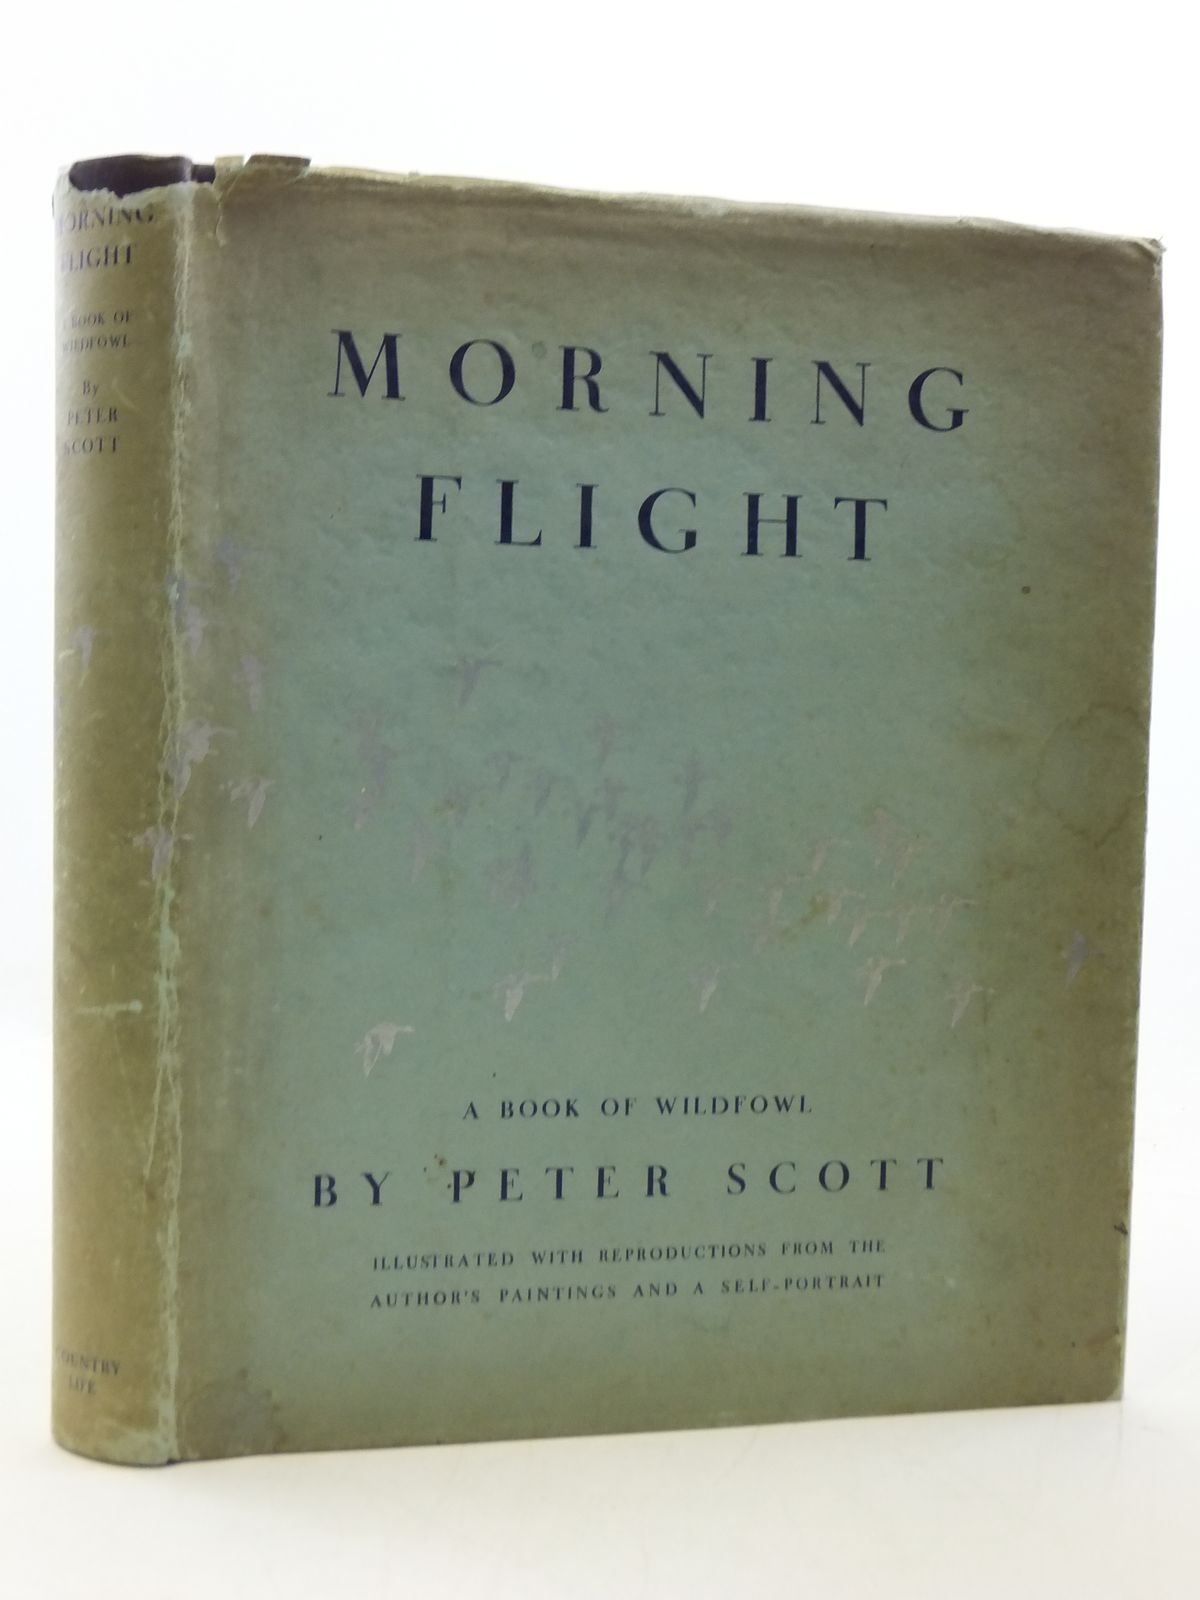 Photo of MORNING FLIGHT A BOOK OF WILDFOWL written by Scott, Peter illustrated by Scott, Peter published by Country Life Limited (STOCK CODE: 1207782)  for sale by Stella & Rose's Books